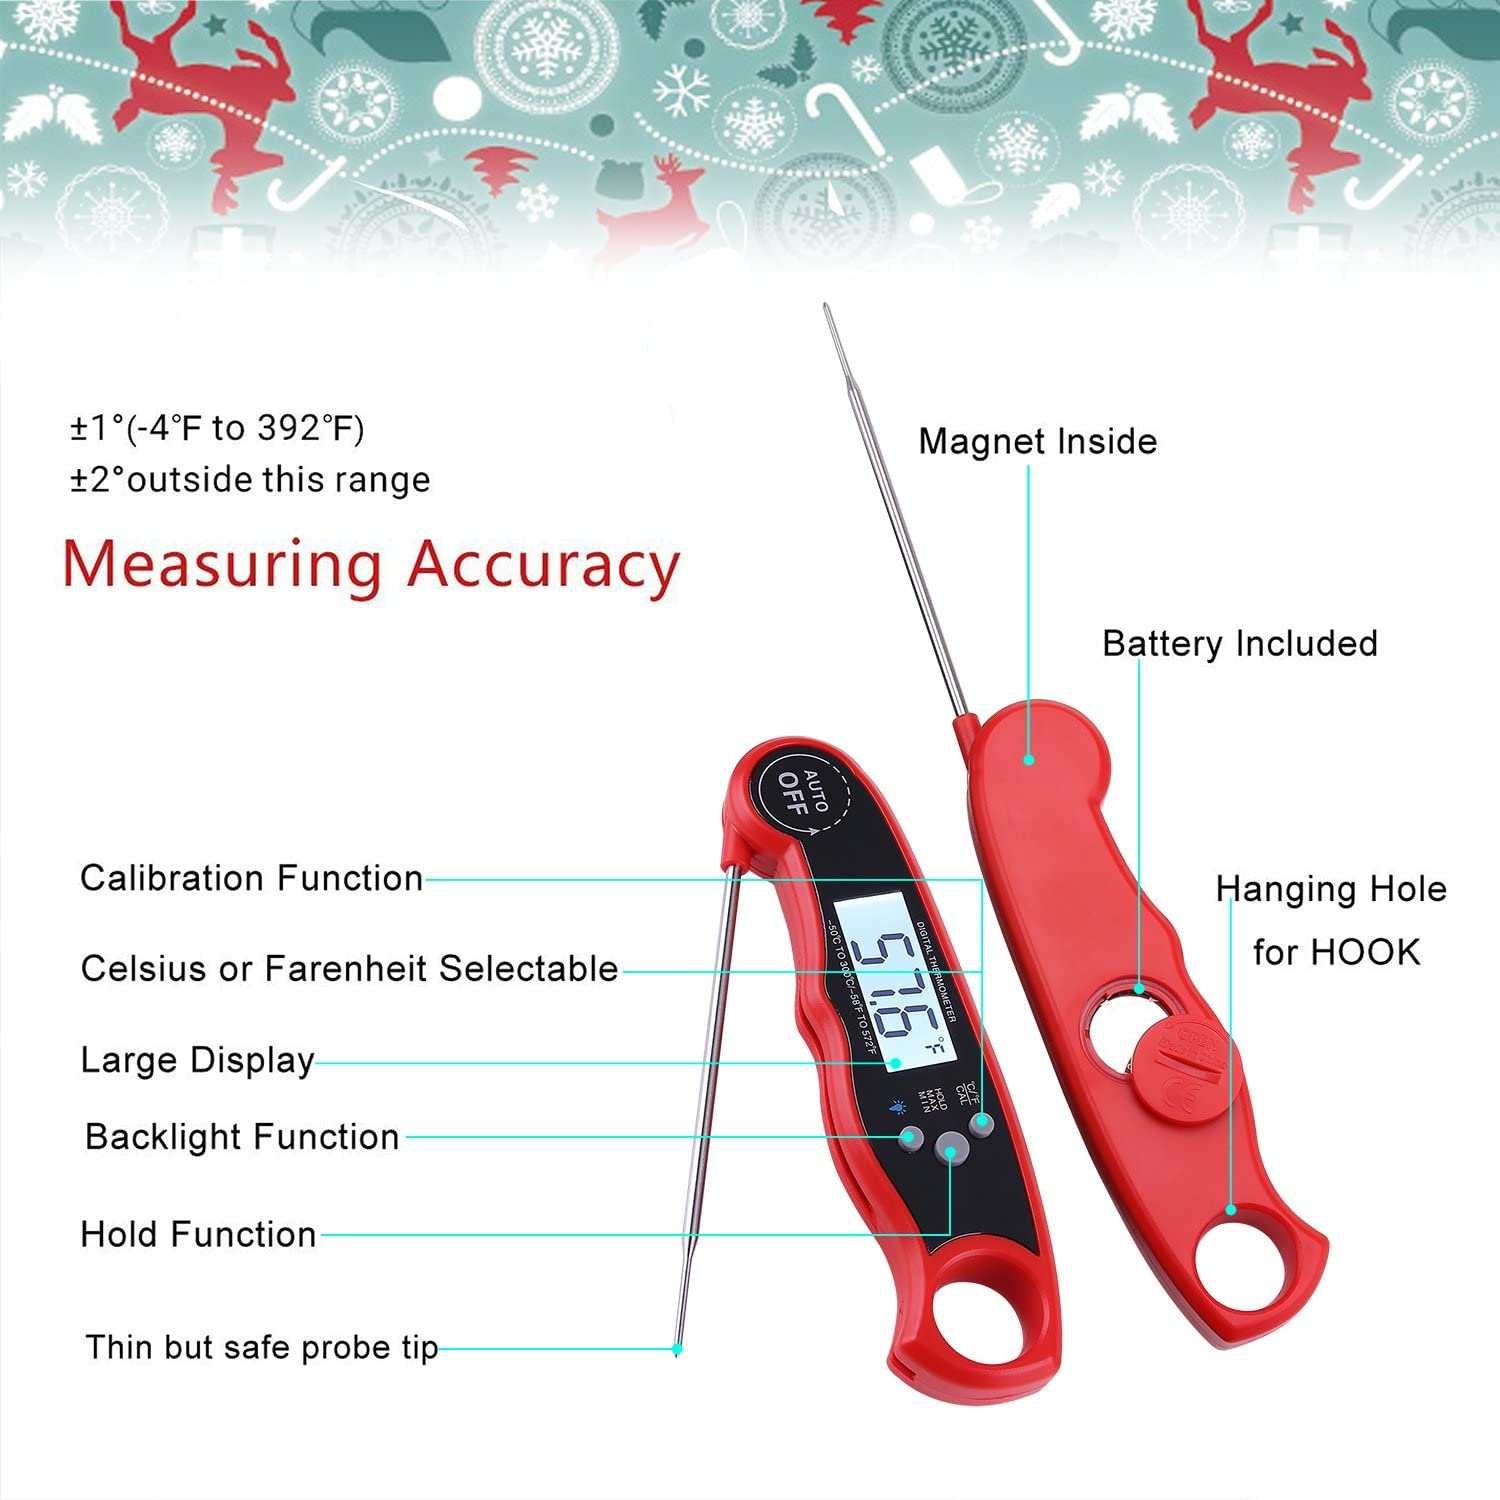 Red Szaerfa Digital Waterproof Meat Thermometer Instant Read With Probe /& Blacklight for Grilling BBQ Water Milk Bathing